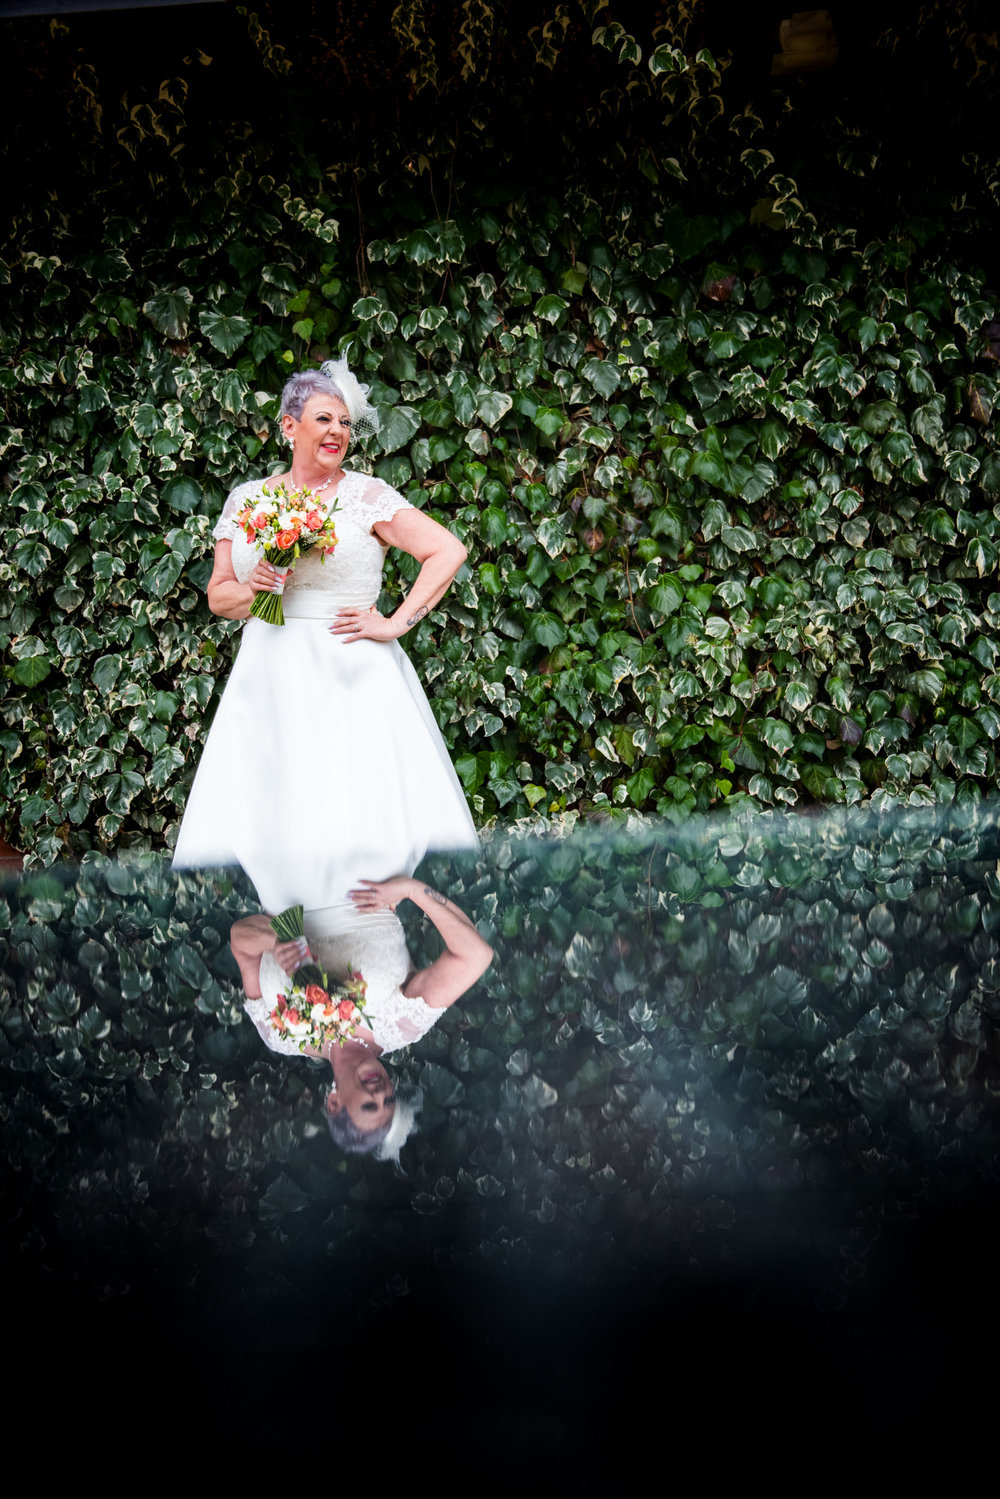 Outdoor portrait of the Bride reflected in a glass table